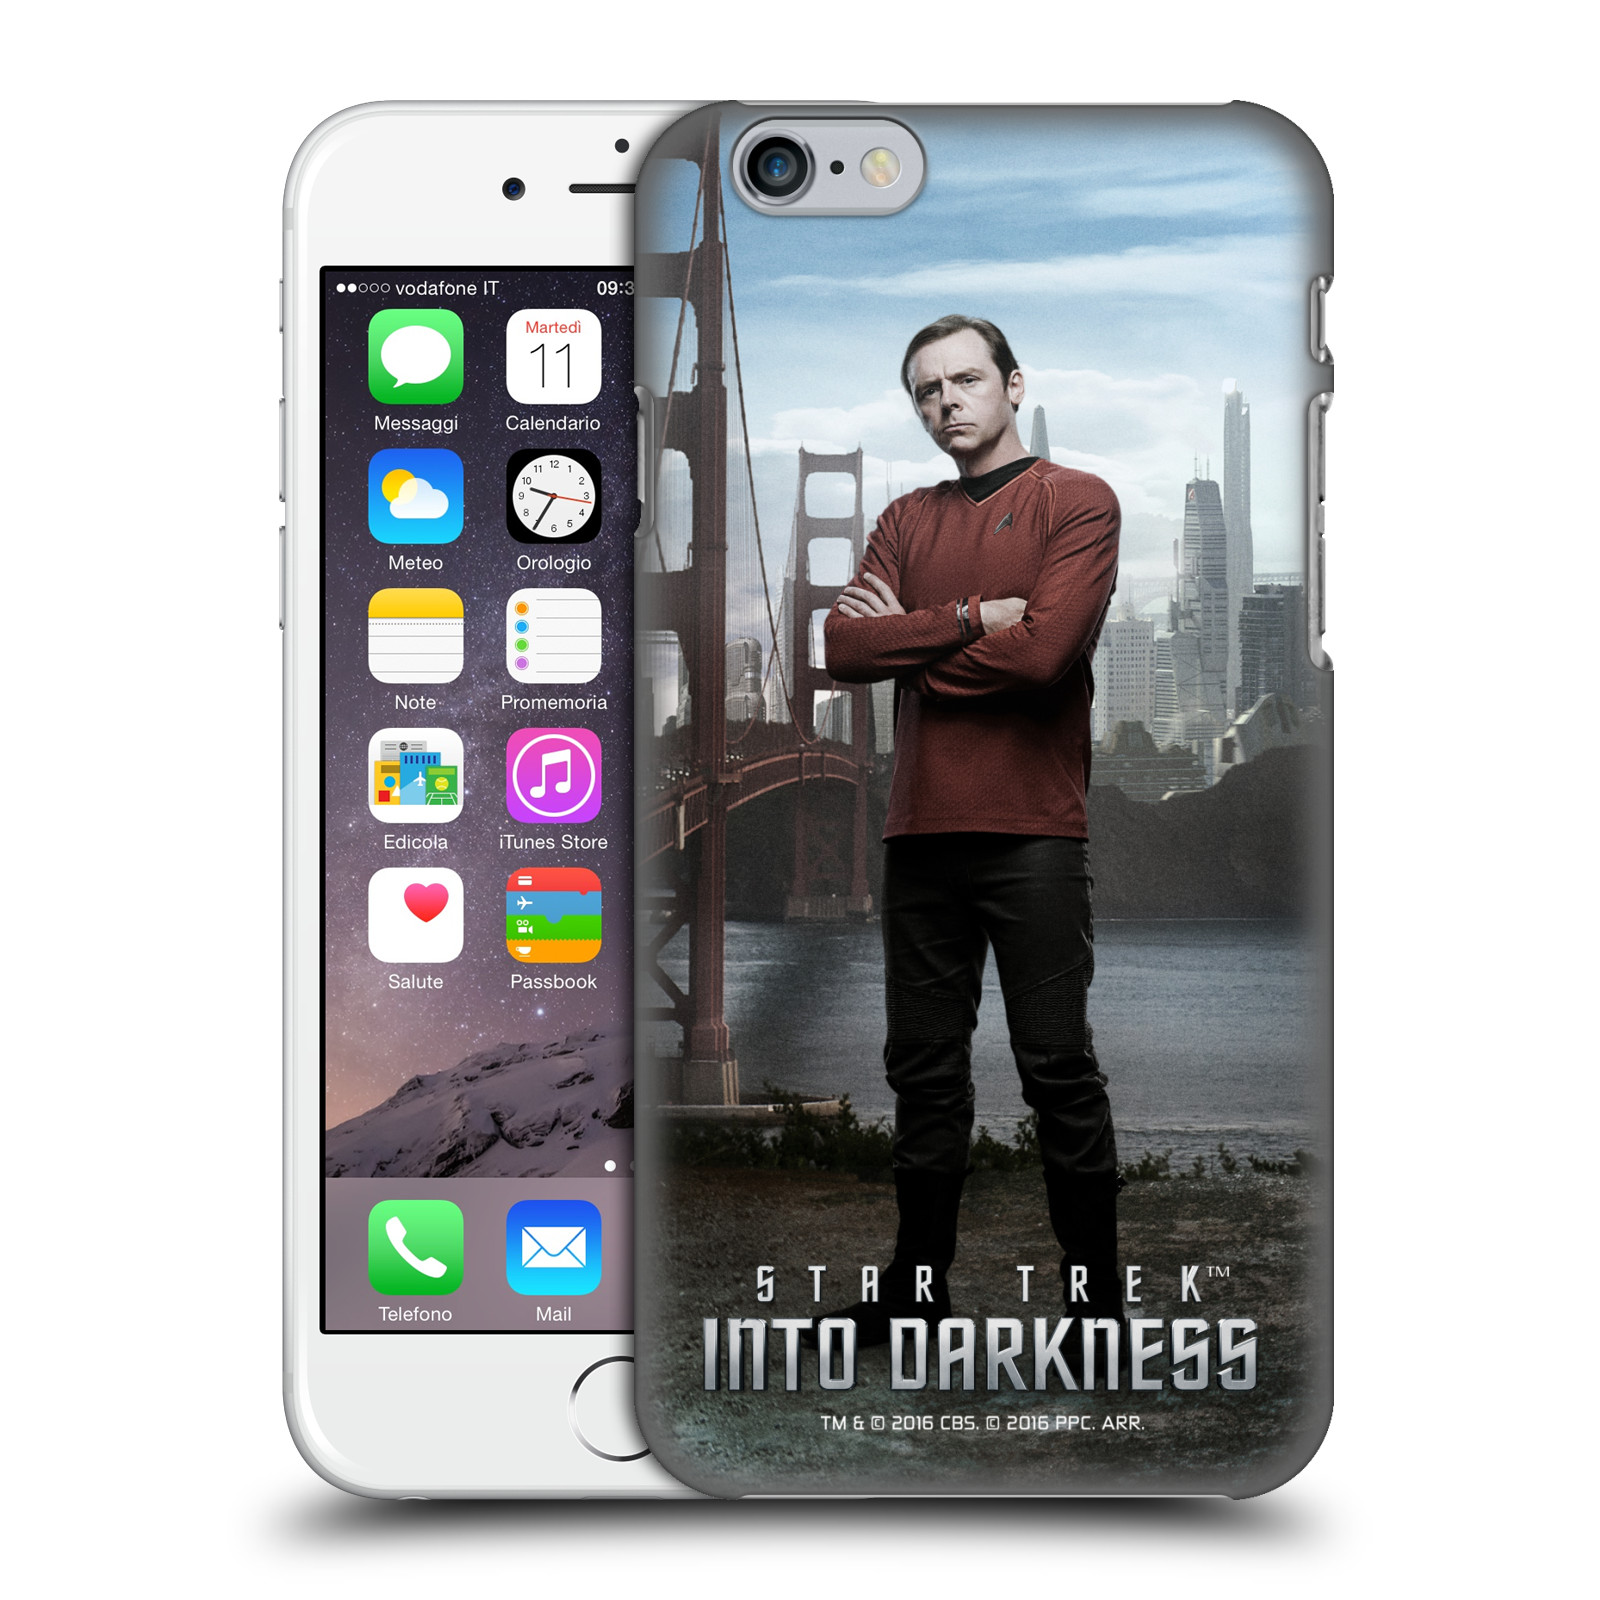 Star Trek Characters Into Darkness XII-Scotty